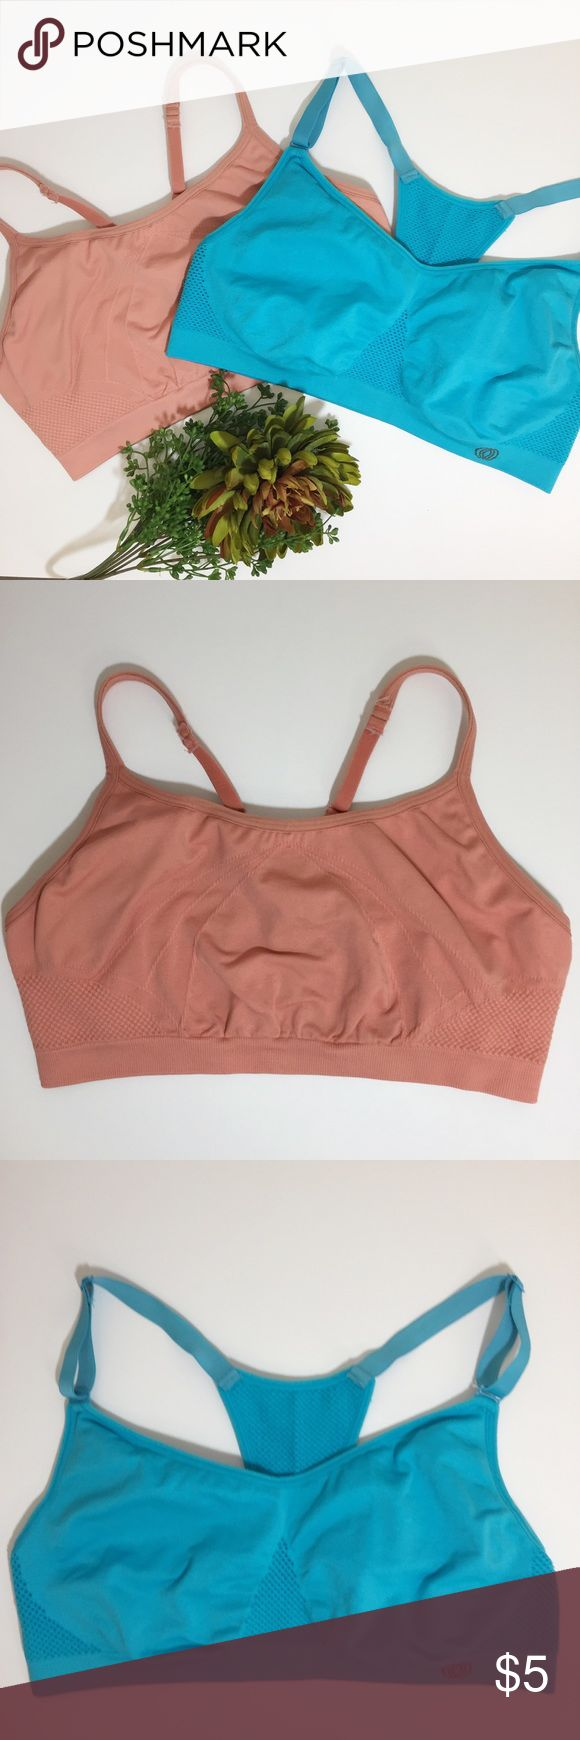 Atheletic Sports Bras-2 2 Athletic Sports Bras. Size: Large. Both are in great condition. Colors are blue & salmon.  (Pinkish nude) Intimates & Sleepwear Bras